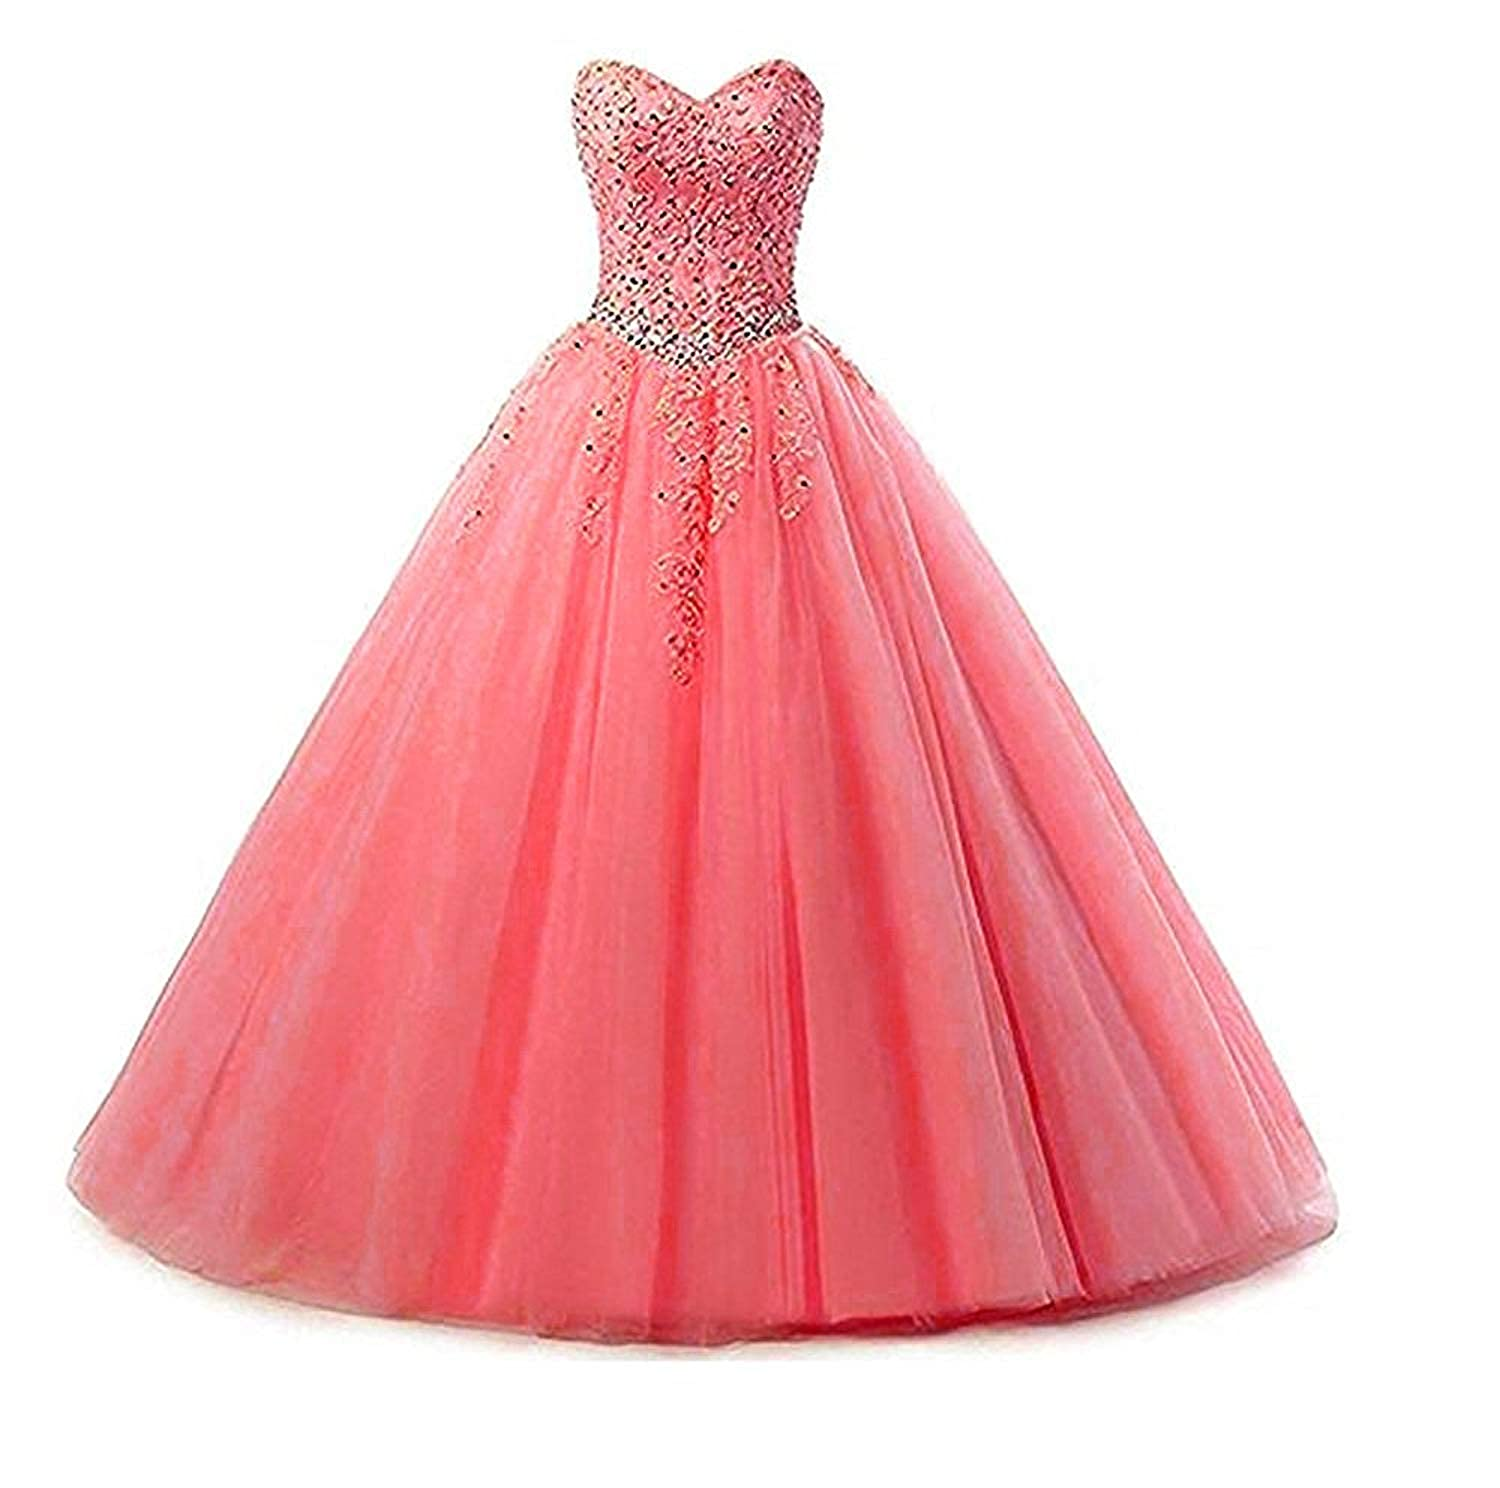 Style2watermelon Liaoye Women's Sweetheart Appliques Quinceanera Dress Tulle Wedding Ball Gown